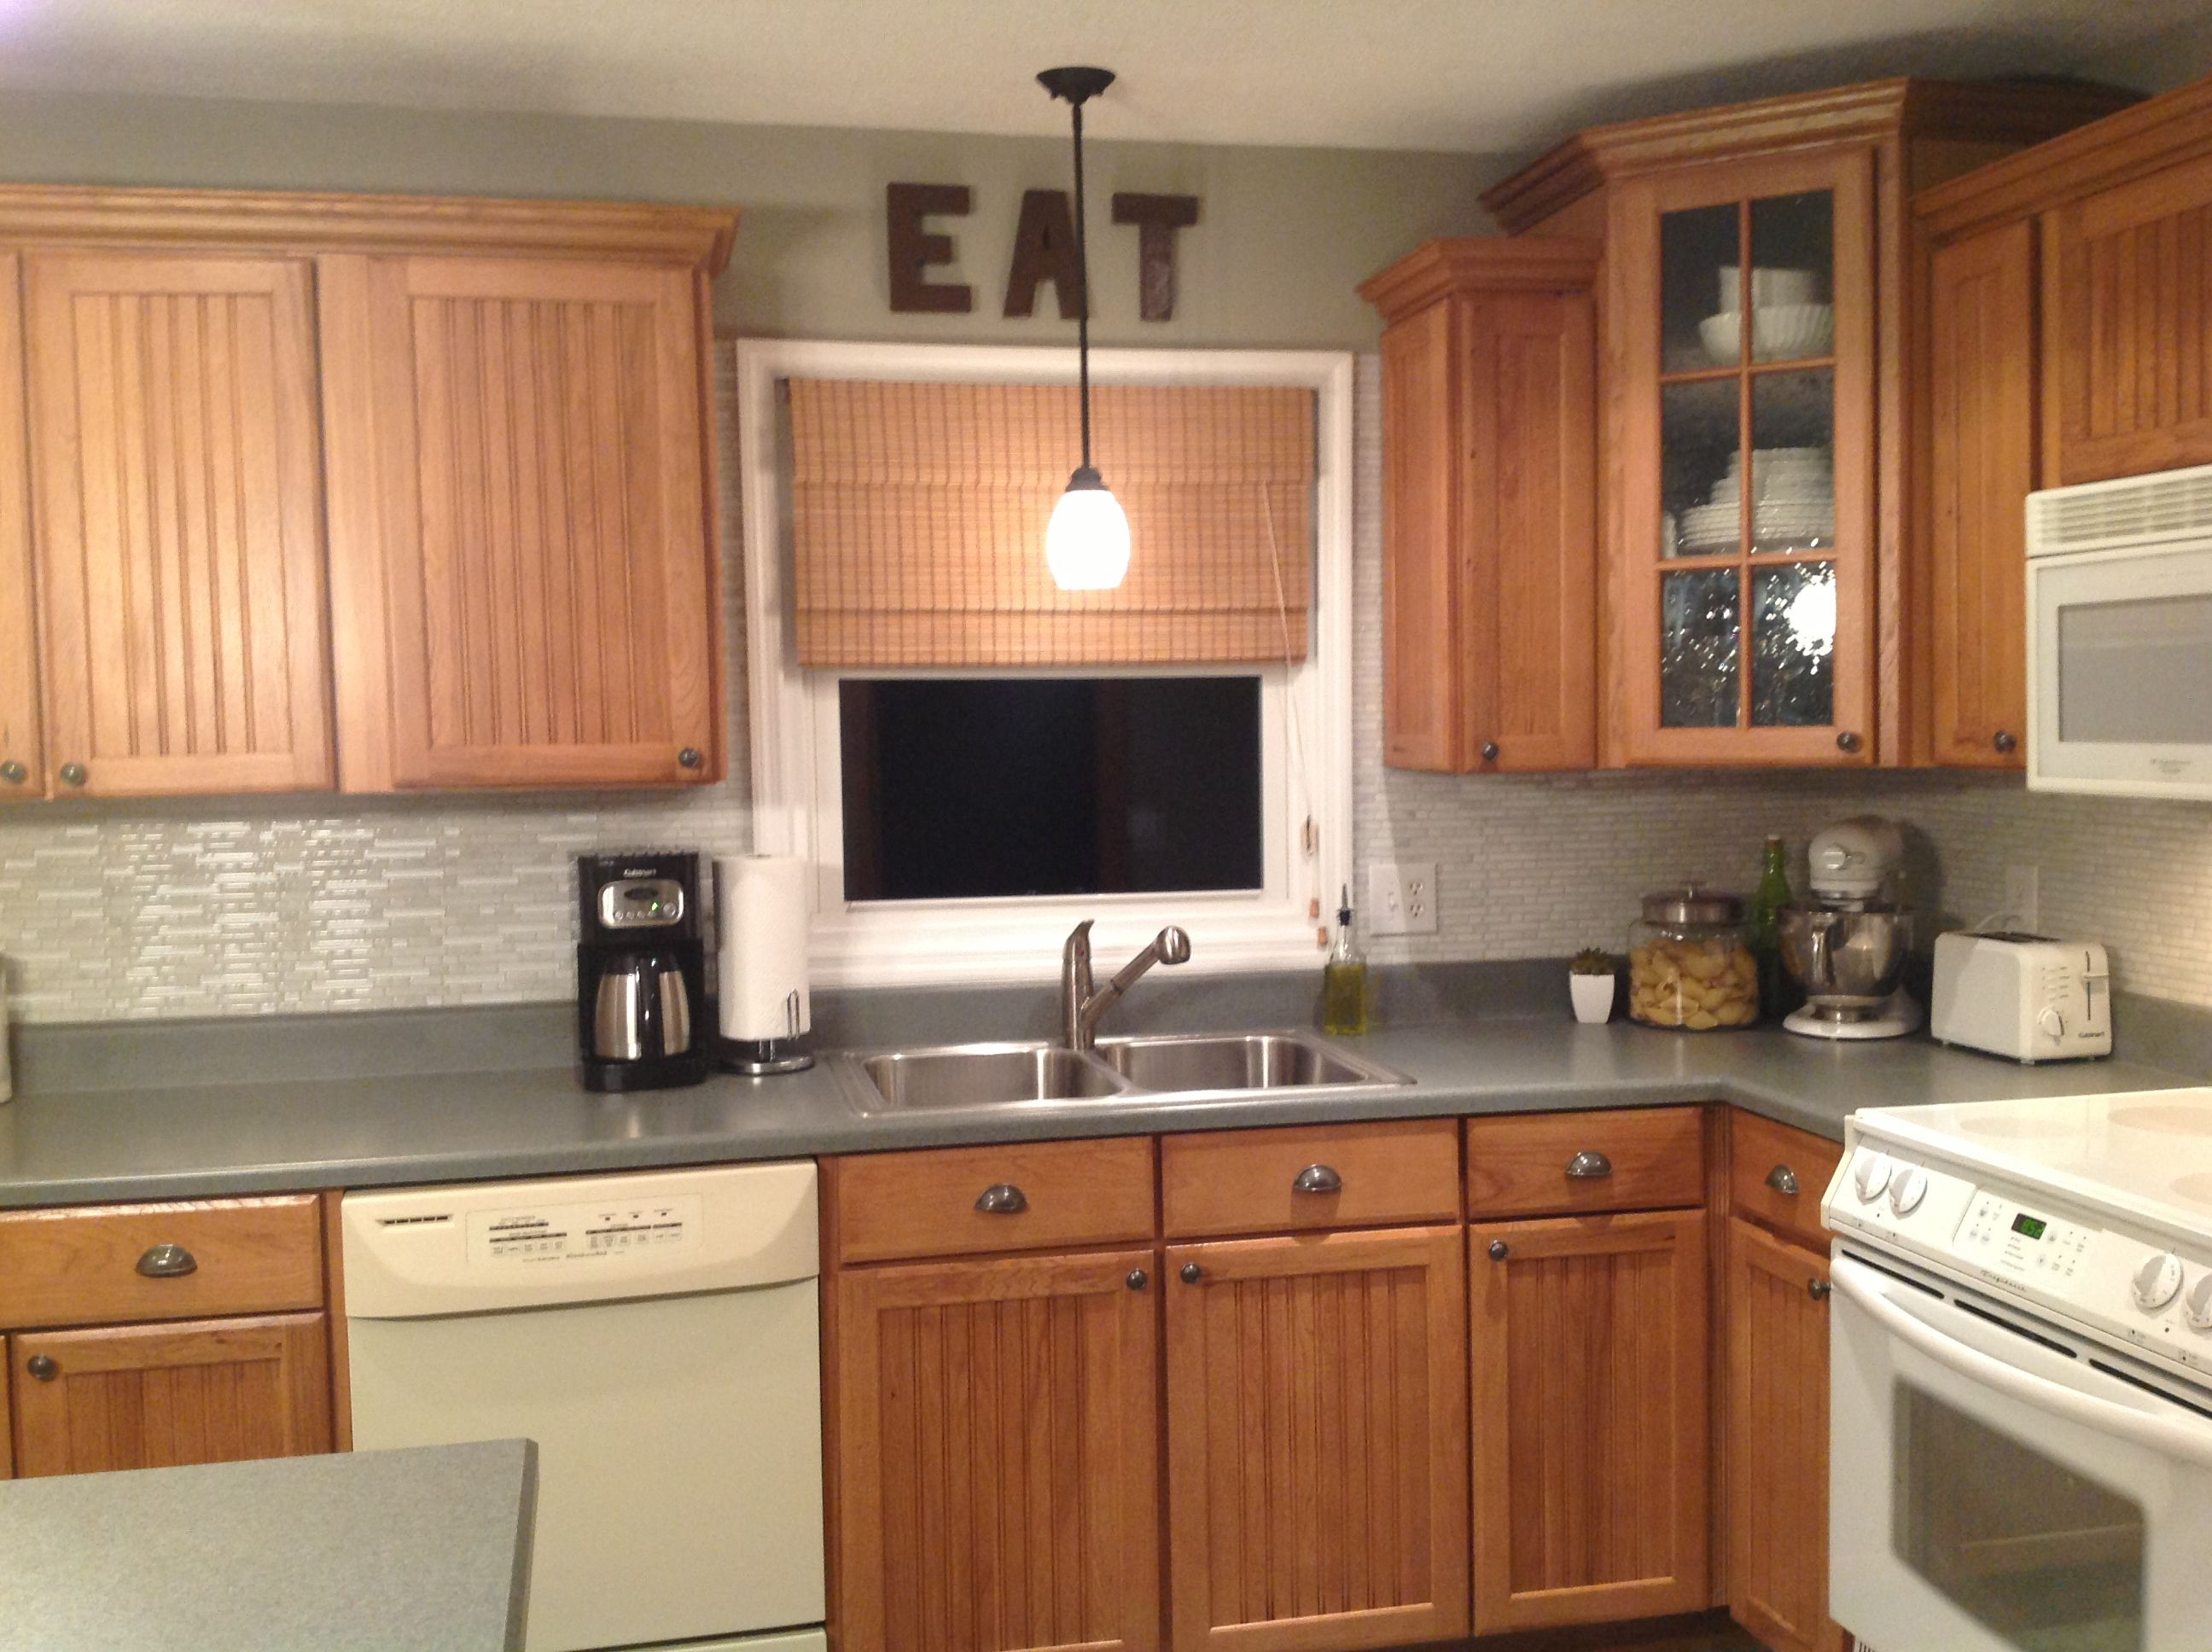 smart tiles backsplash kitchens pinterest